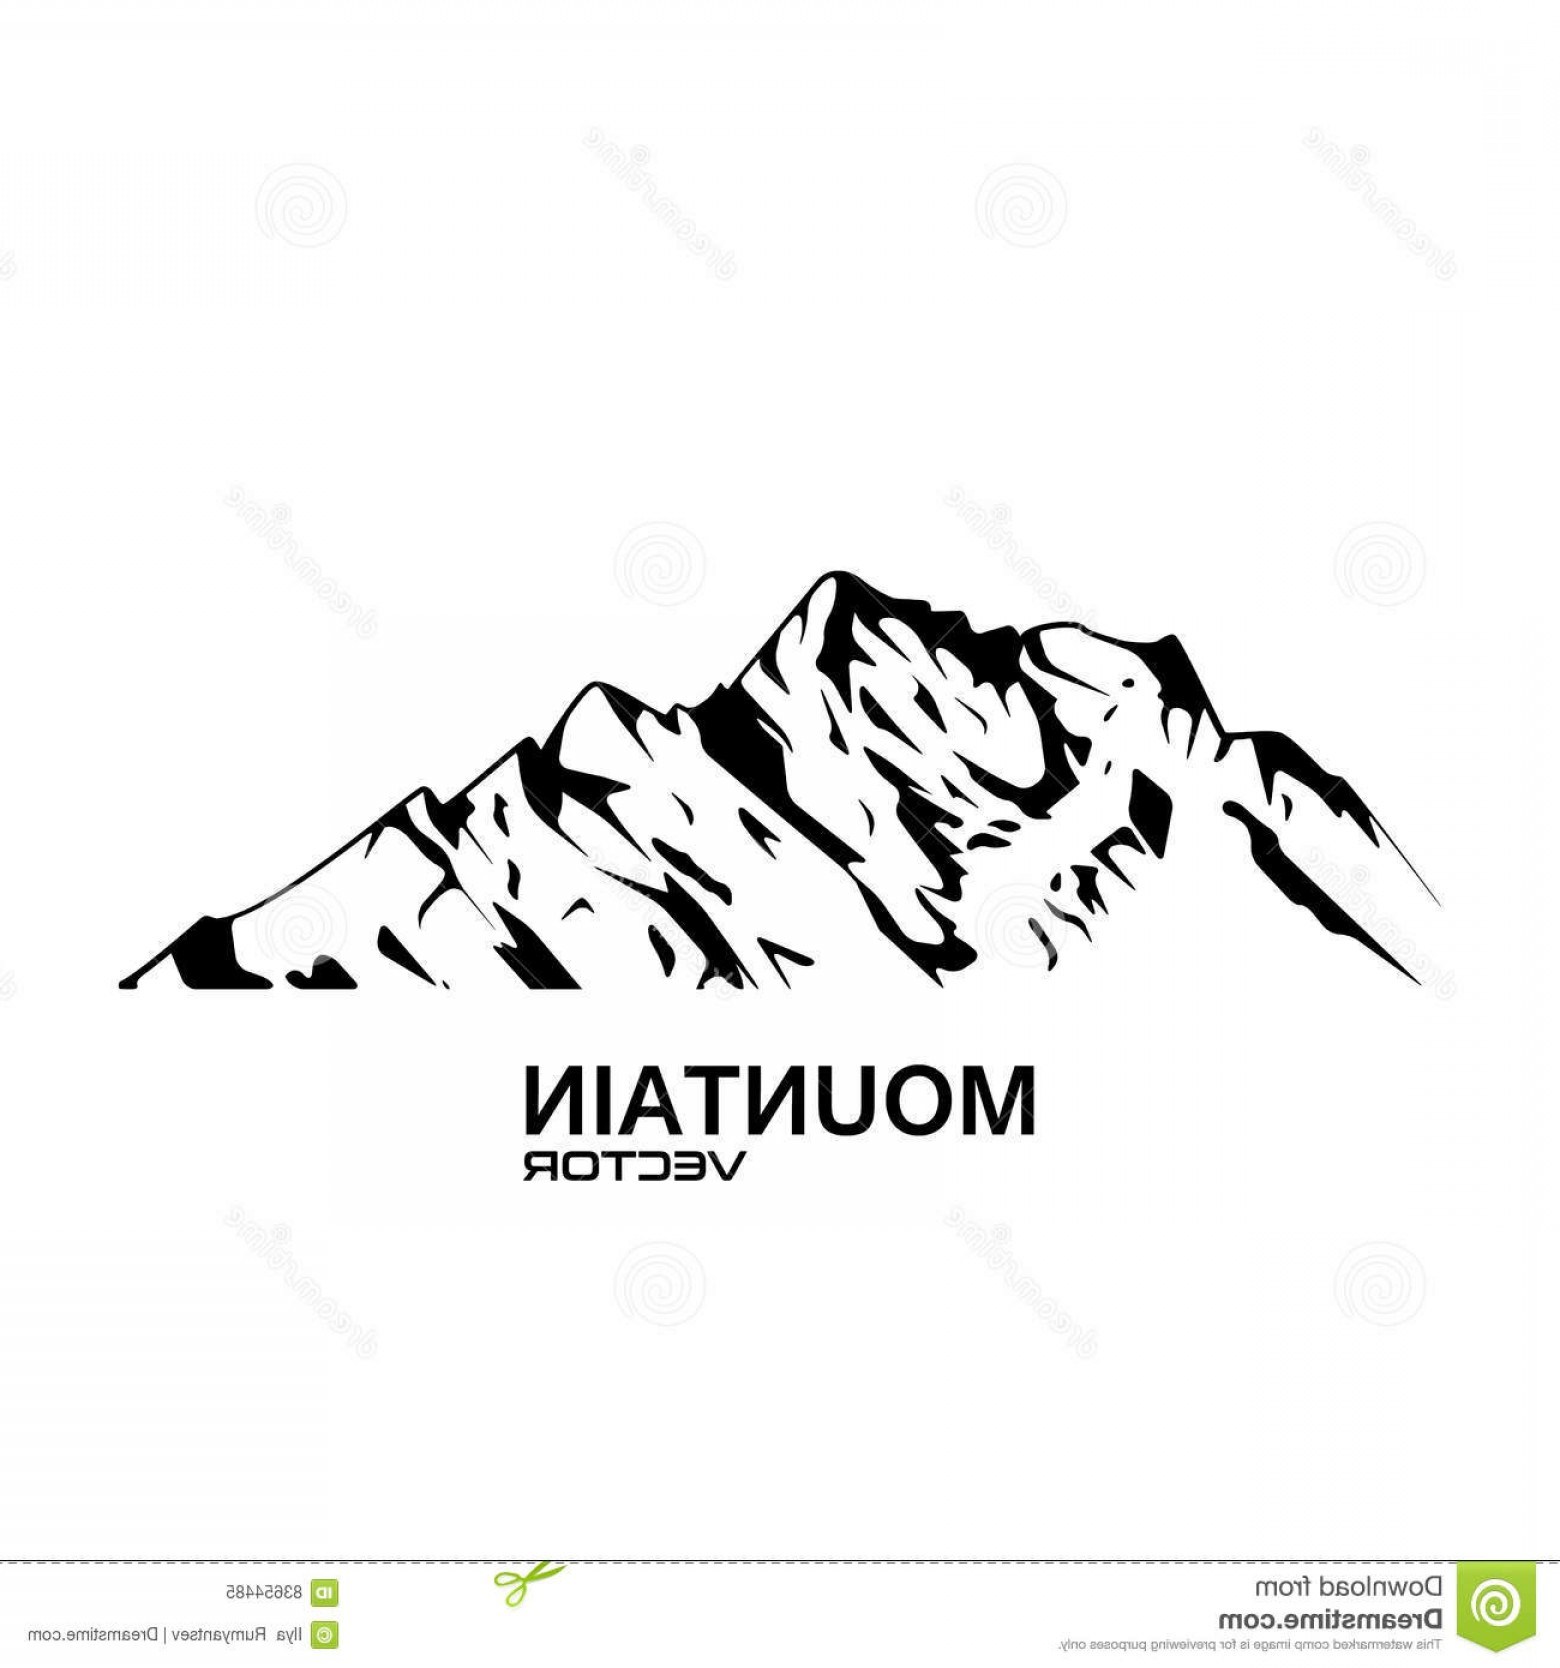 Mountain Range Silhouette Vector Free: Fanciful Stock Illustration Vector Mountain Range Silhouette Isolated White Image